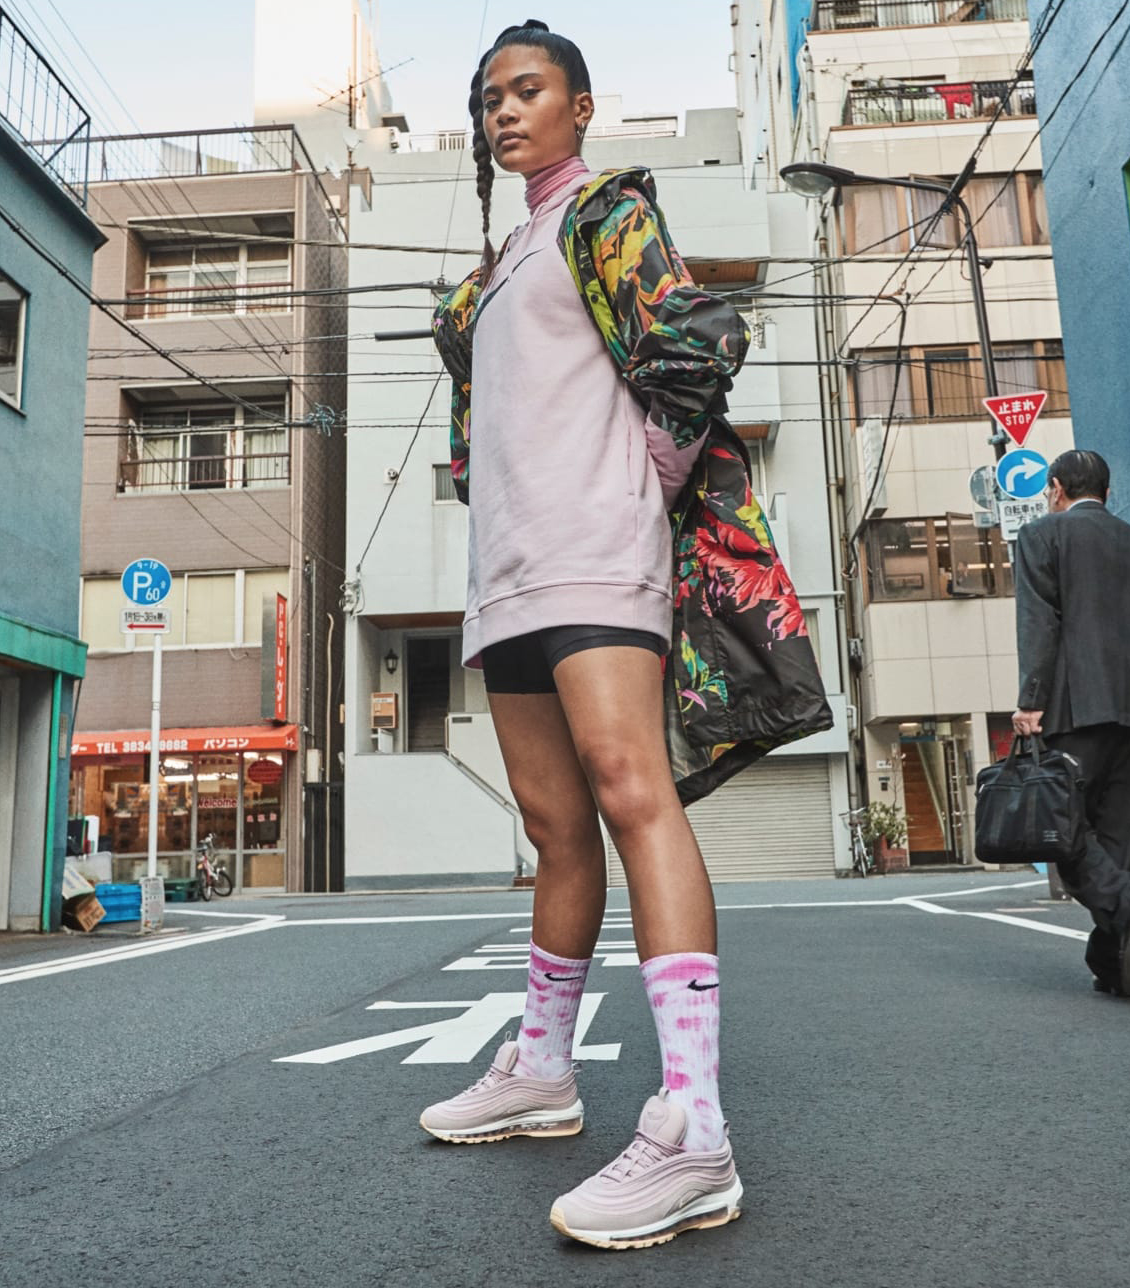 f5c48d7090b1e Girl wearing Nike Air Max 97 shoes in pink and white with Nike Sportswear  Pack 2019 collection clothing. Street style in Asia.